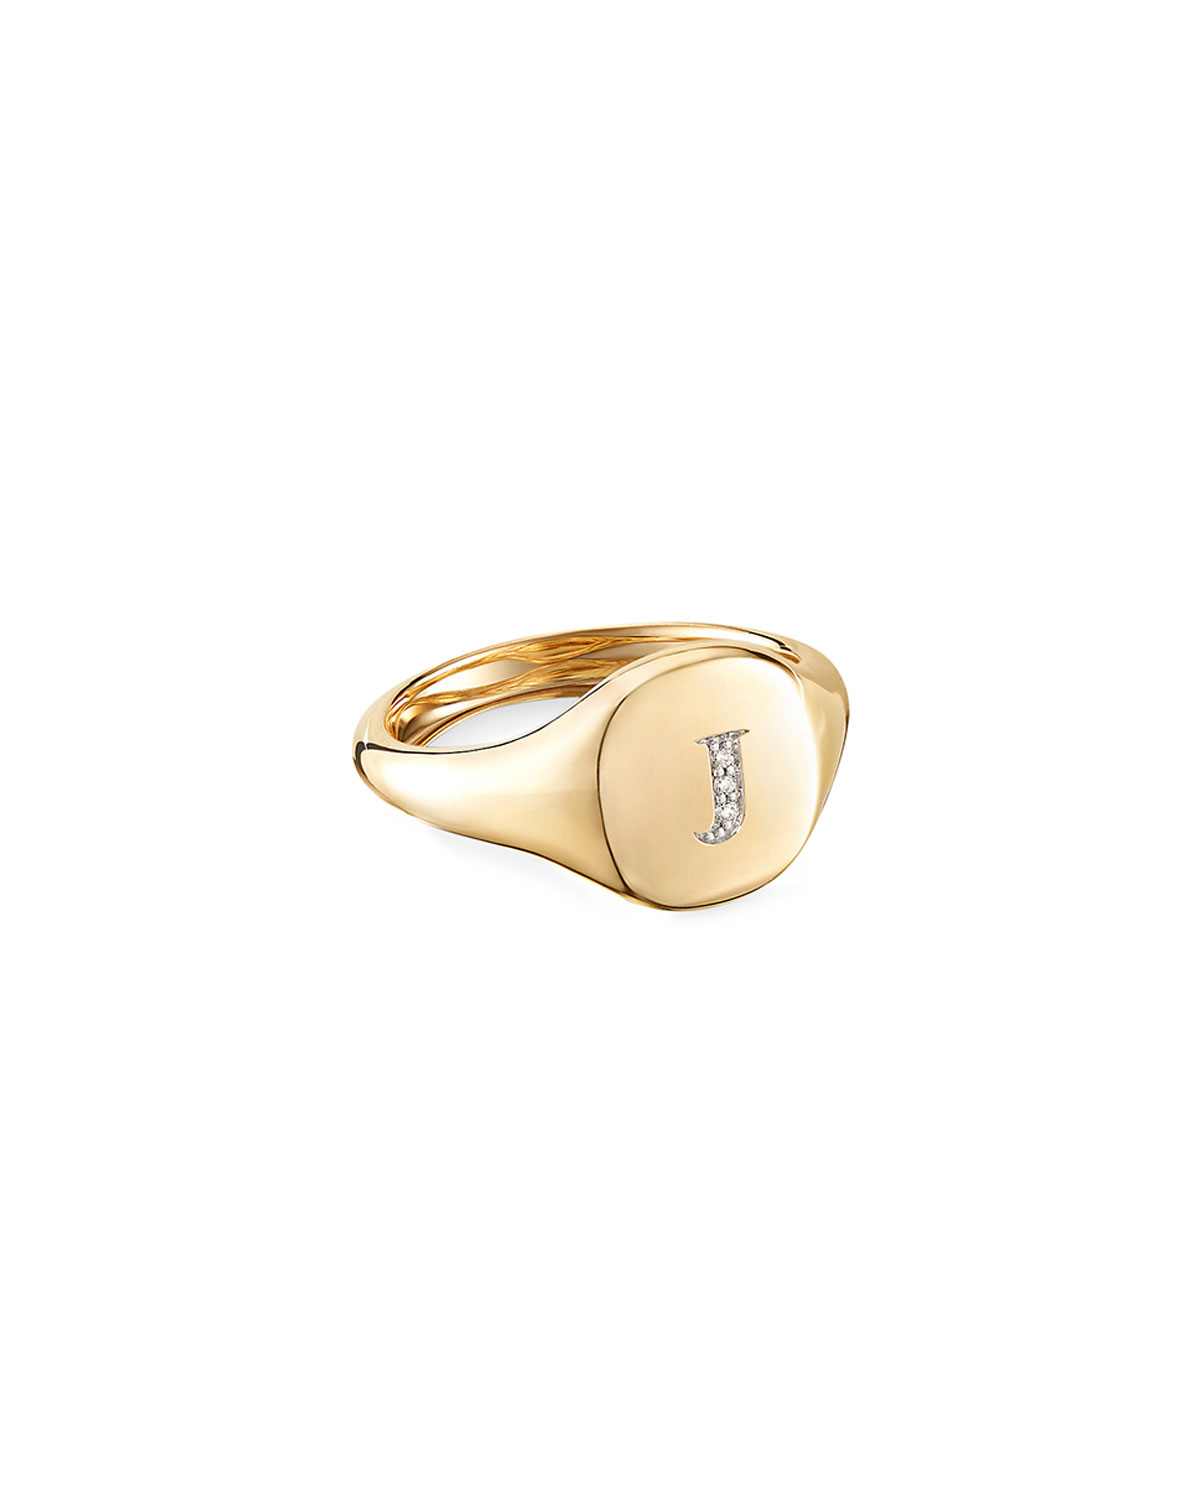 David Yurman Mini DY Initial J Pinky Ring in 18K Yellow Gold with Diamonds, Size 5.5